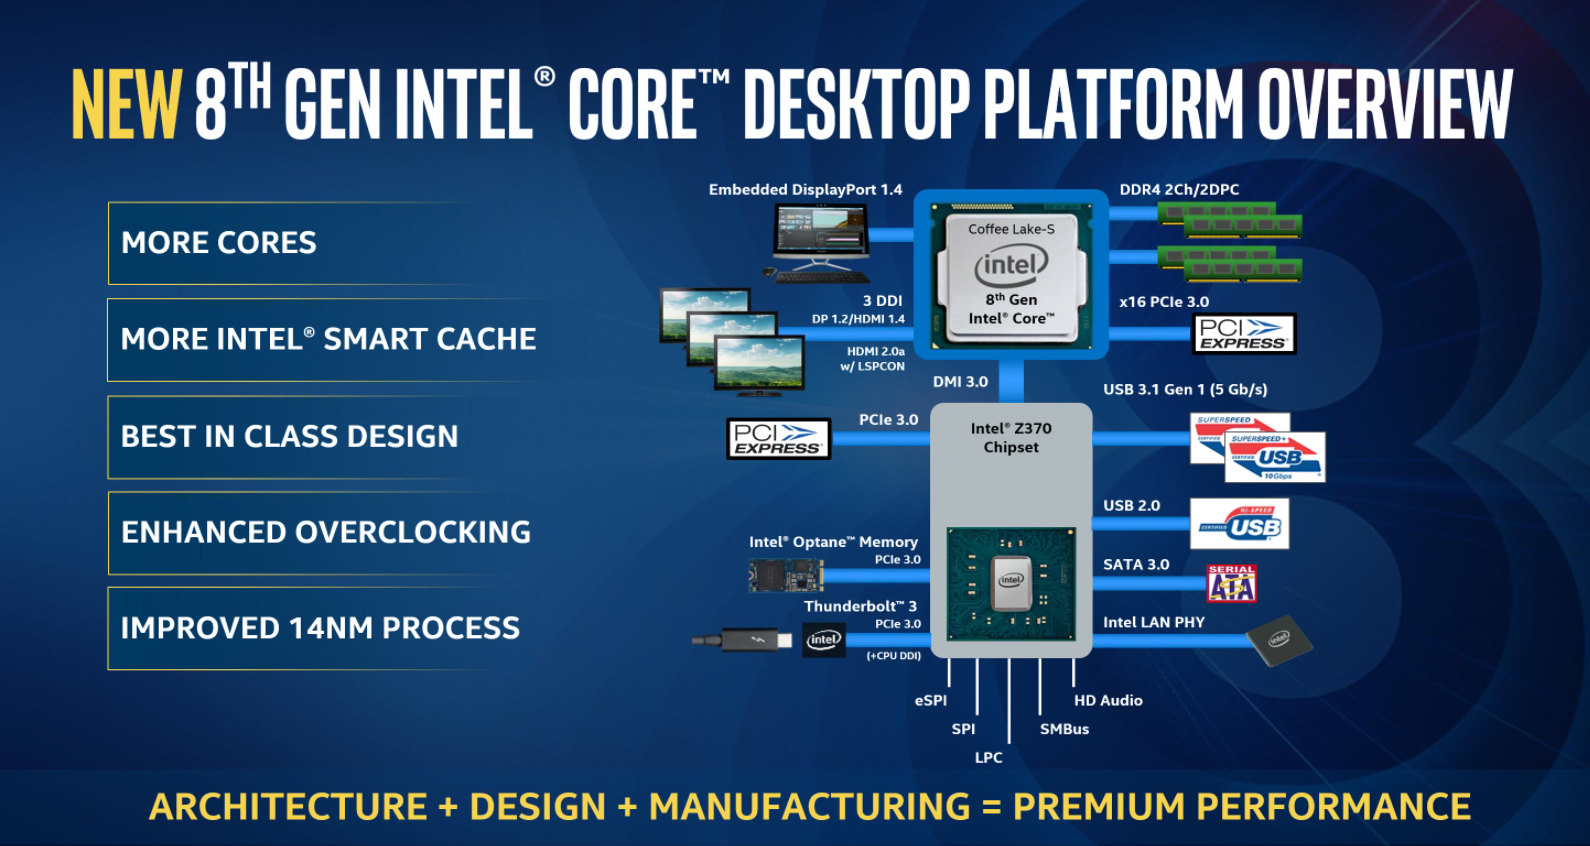 Intel Core i7-8700K overclocked reaches 4.8GHz on air